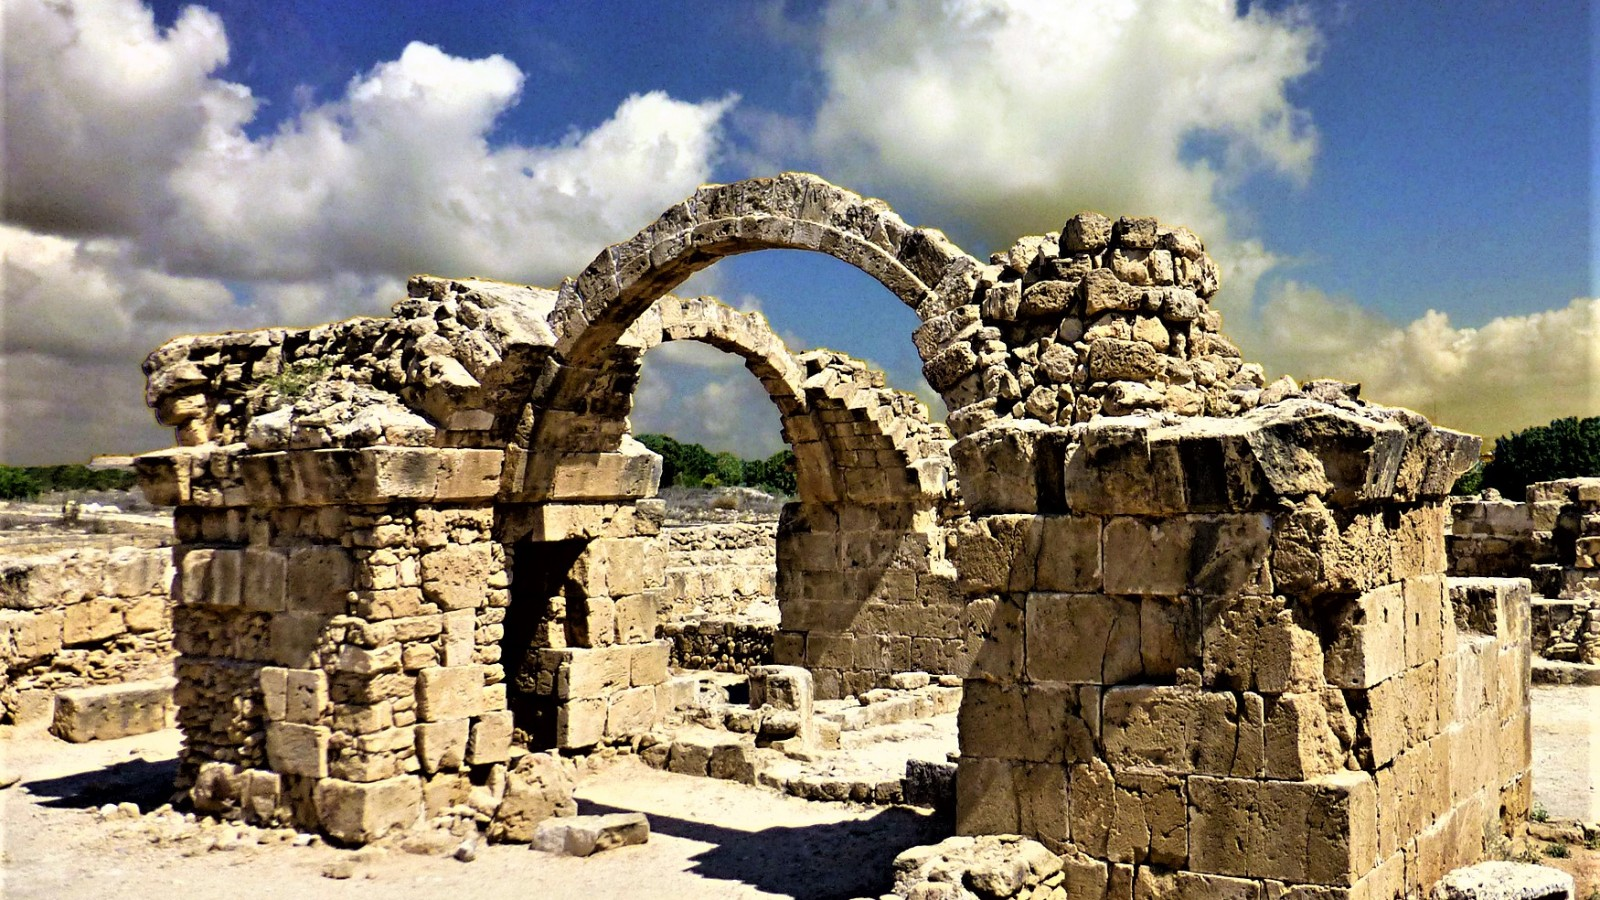 The Kato Pafos Archaeological Park is a designated UNESCO World Heritage Site